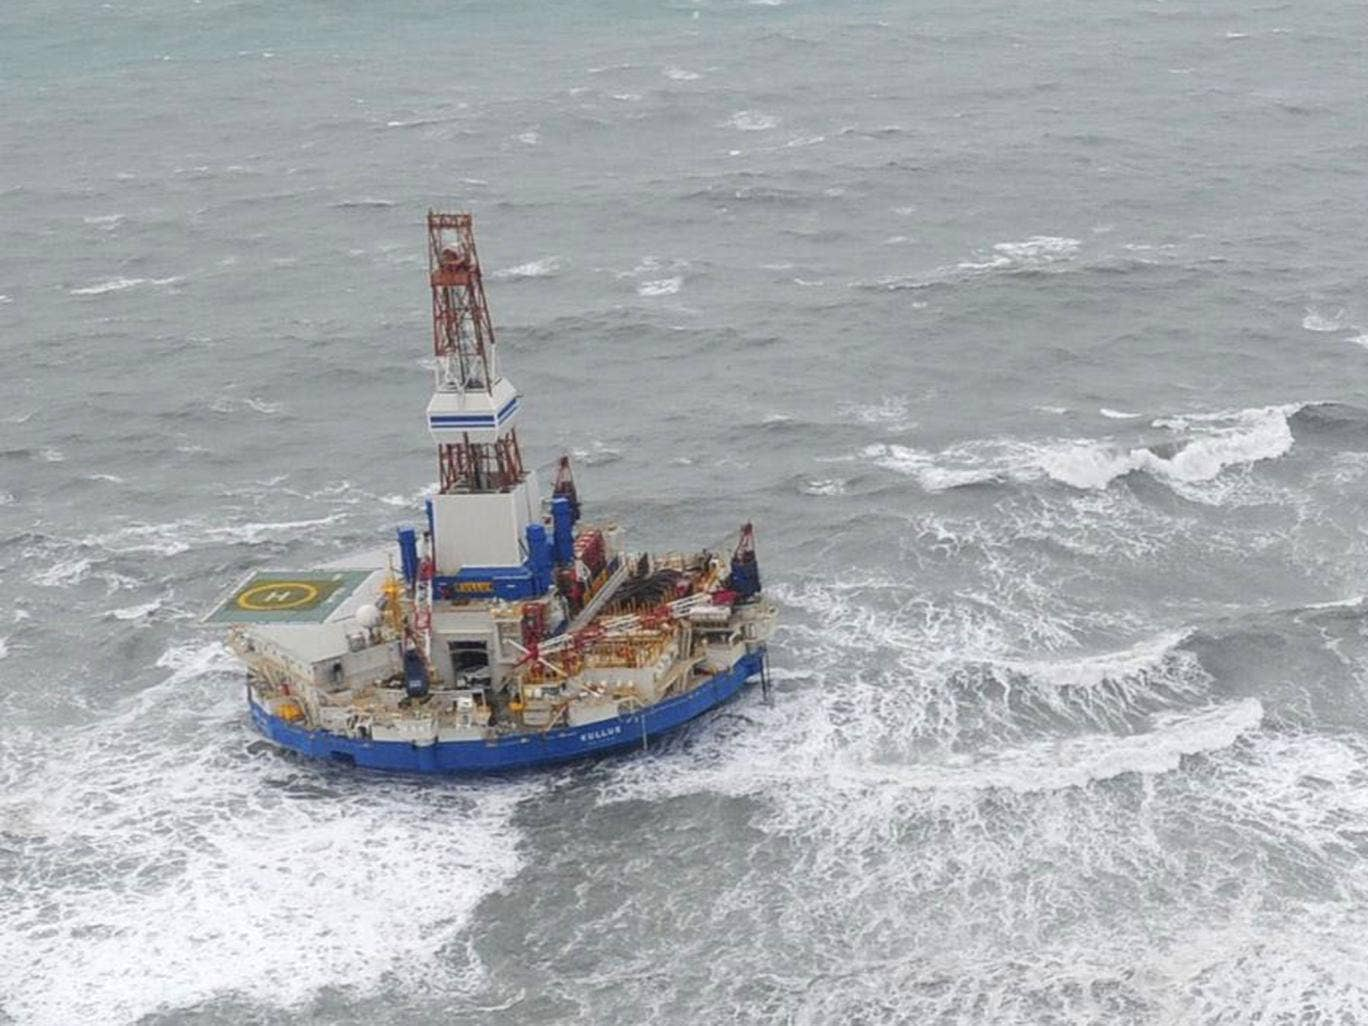 Setting a course away from the Arctic: Shell is retreating in areas that have been a drain on the company